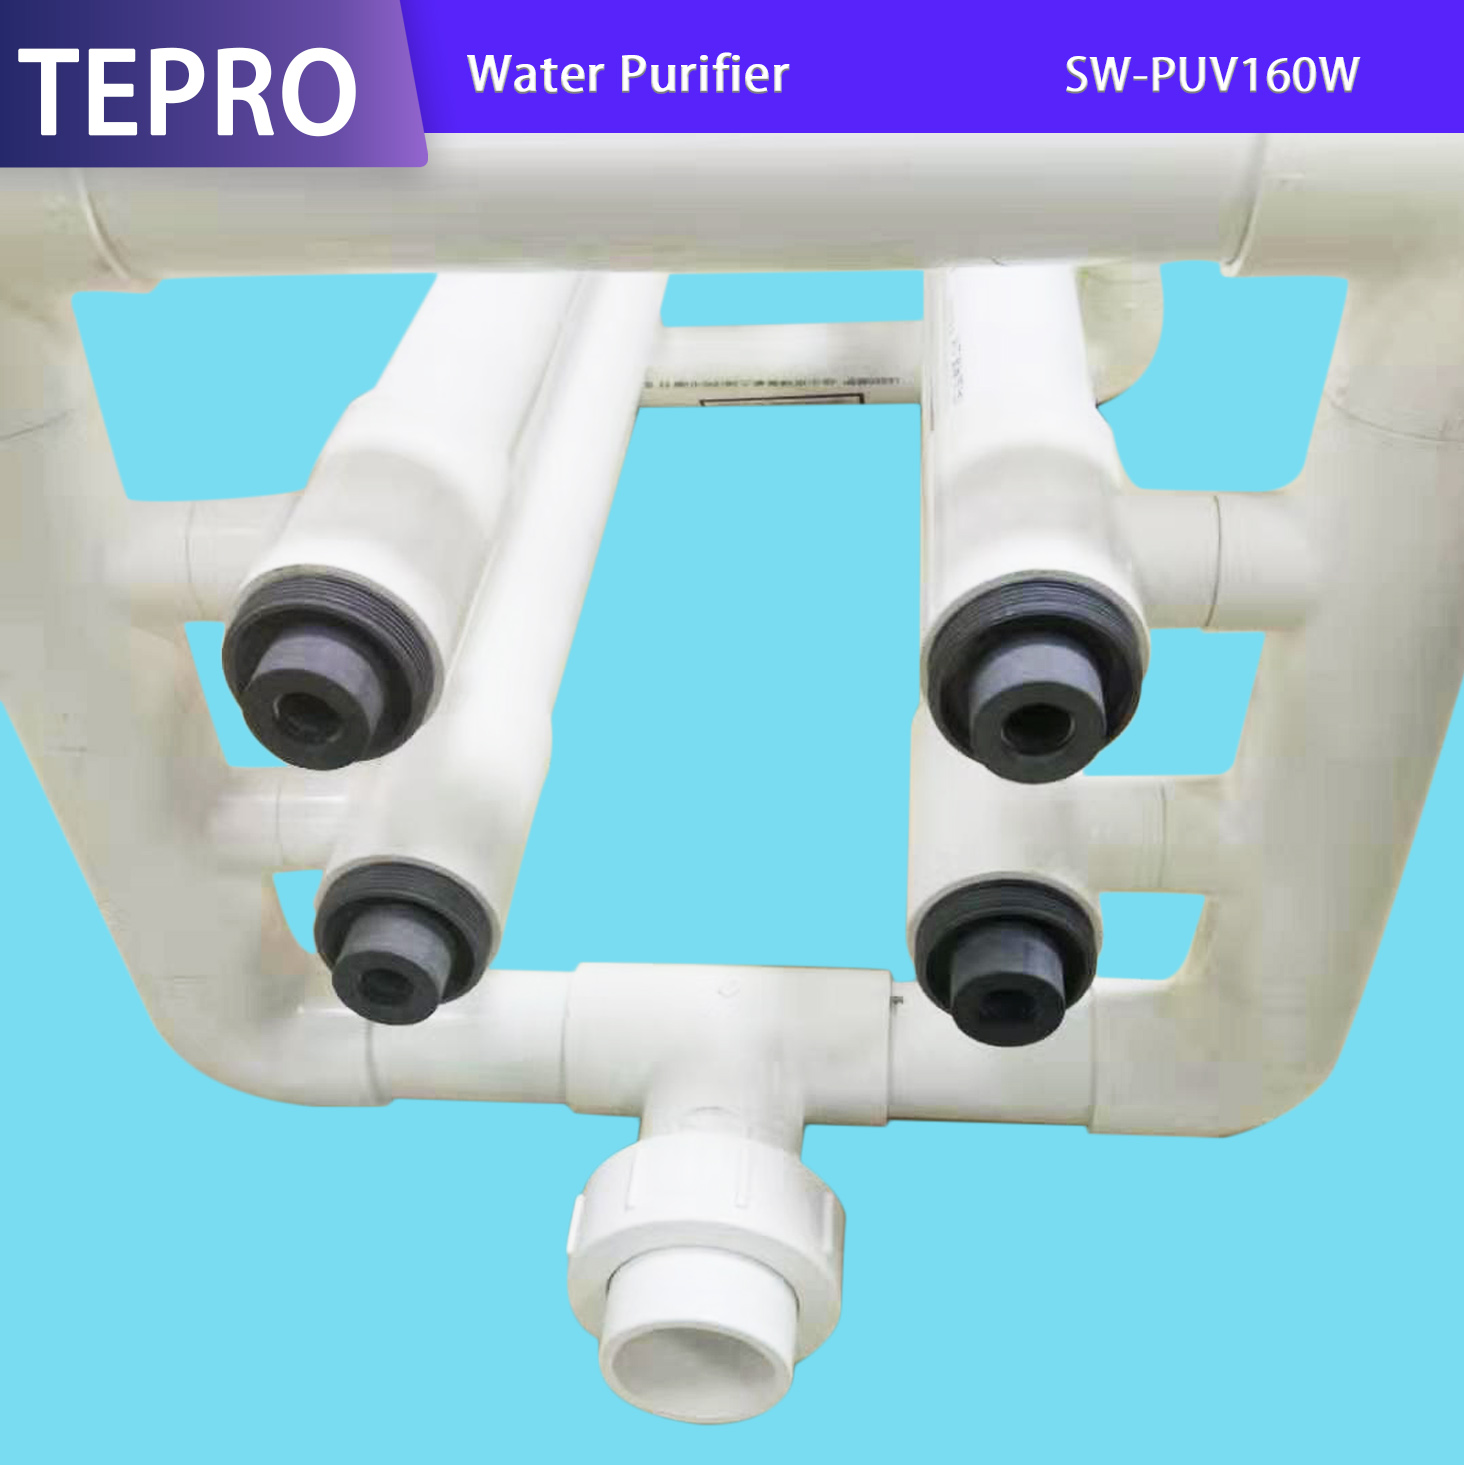 application-ultraviolet water purifier system for hospital-Tepro-img-1